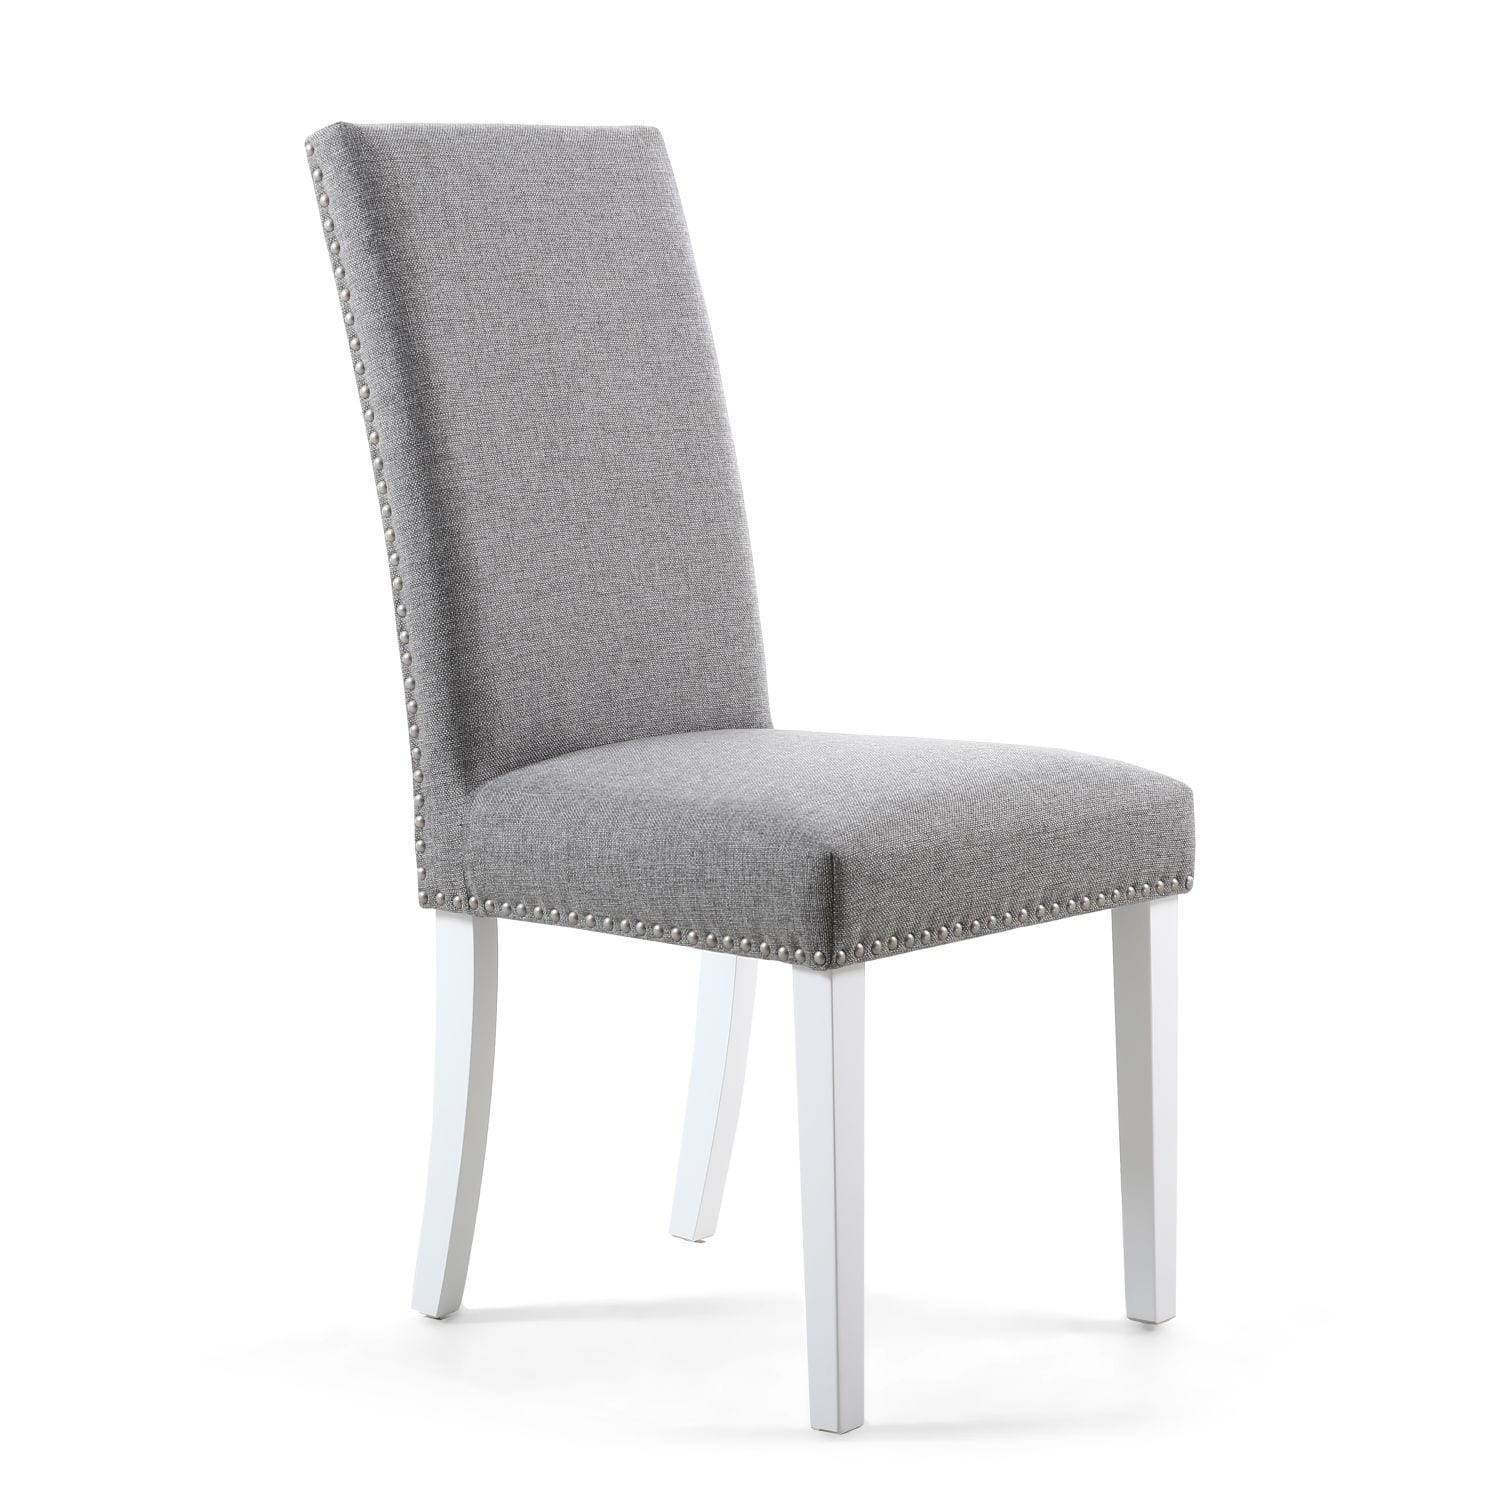 Rivendell Stud Detail Linen Effect Silver Grey Dining Chair with White Legs